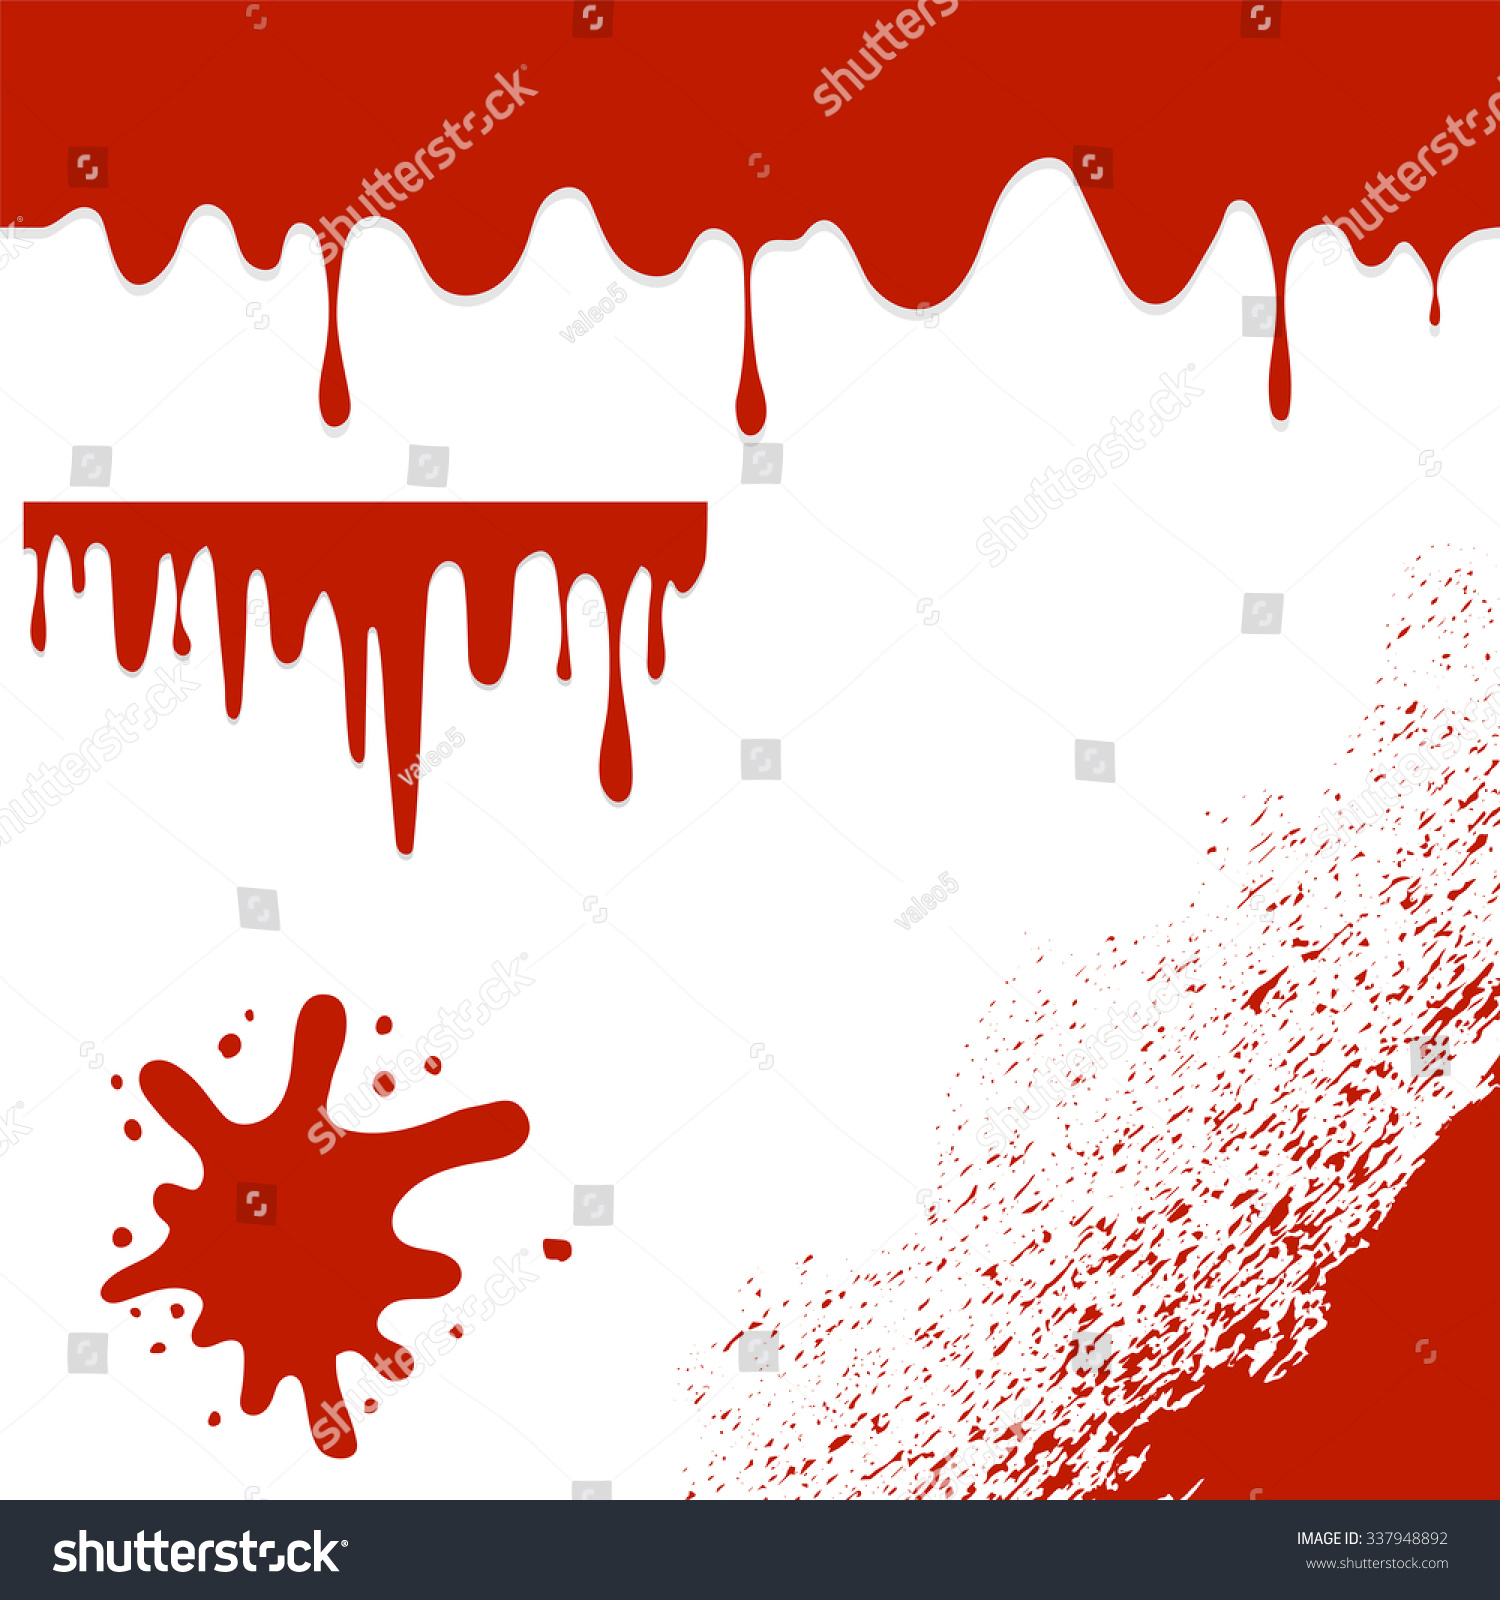 Vector Set Of Blood Splatters Isolated On White Background